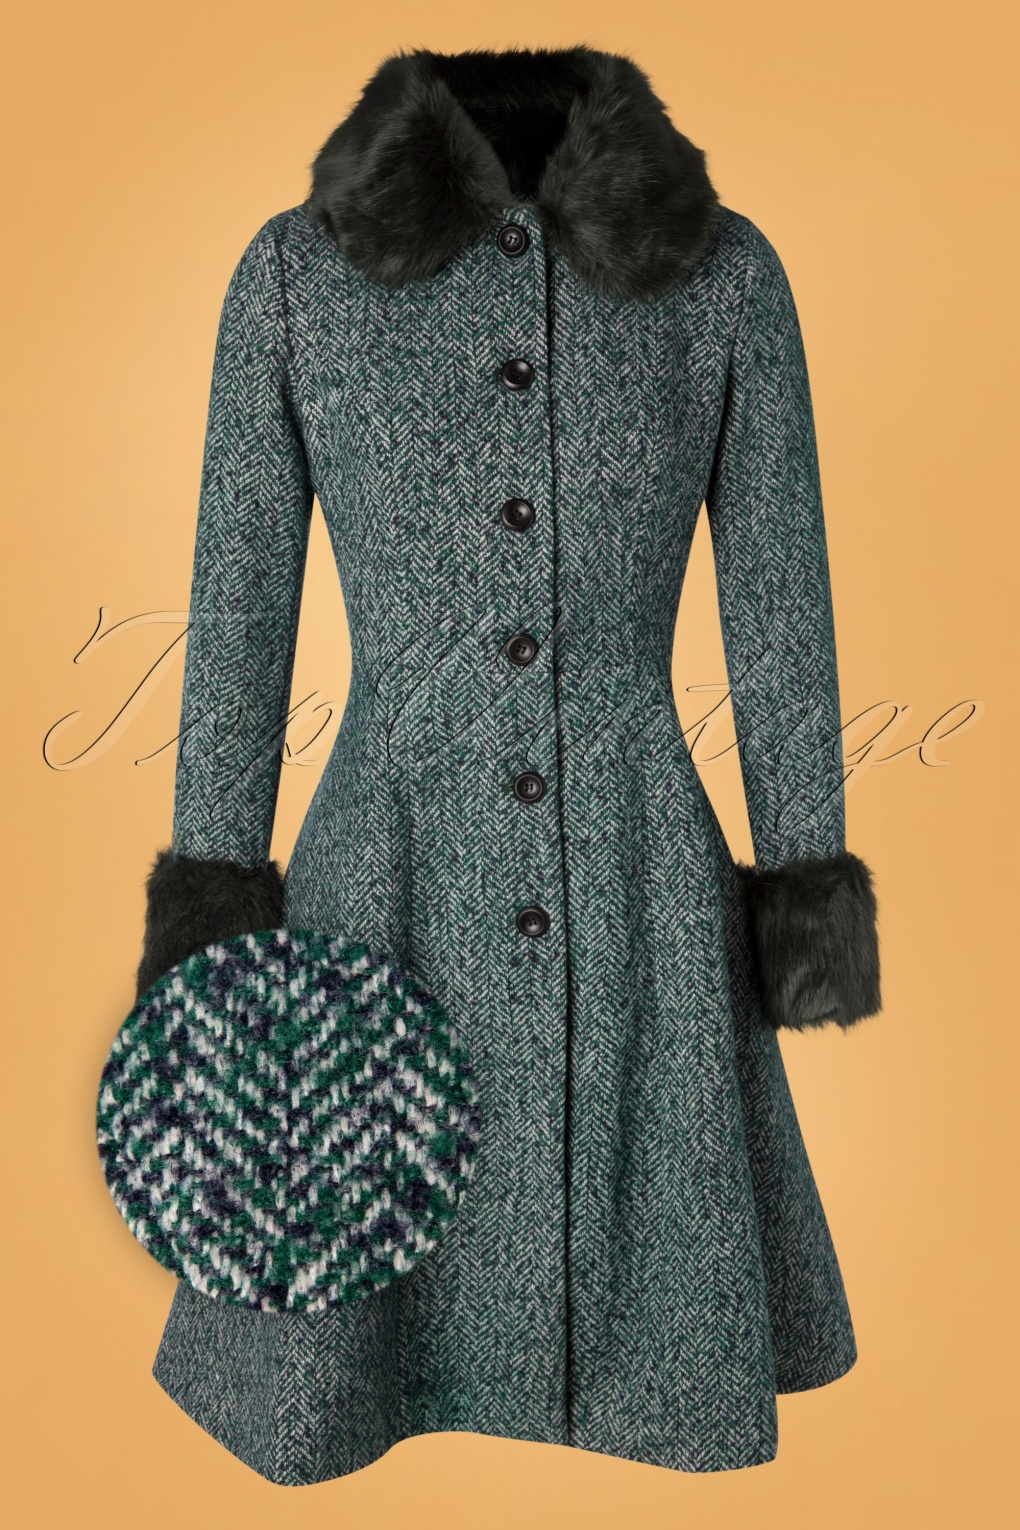 1950s Jackets, Coats, Bolero | Swing, Pin Up, Rockabilly 50s Erin Herringbone Coat in Green £133.29 AT vintagedancer.com